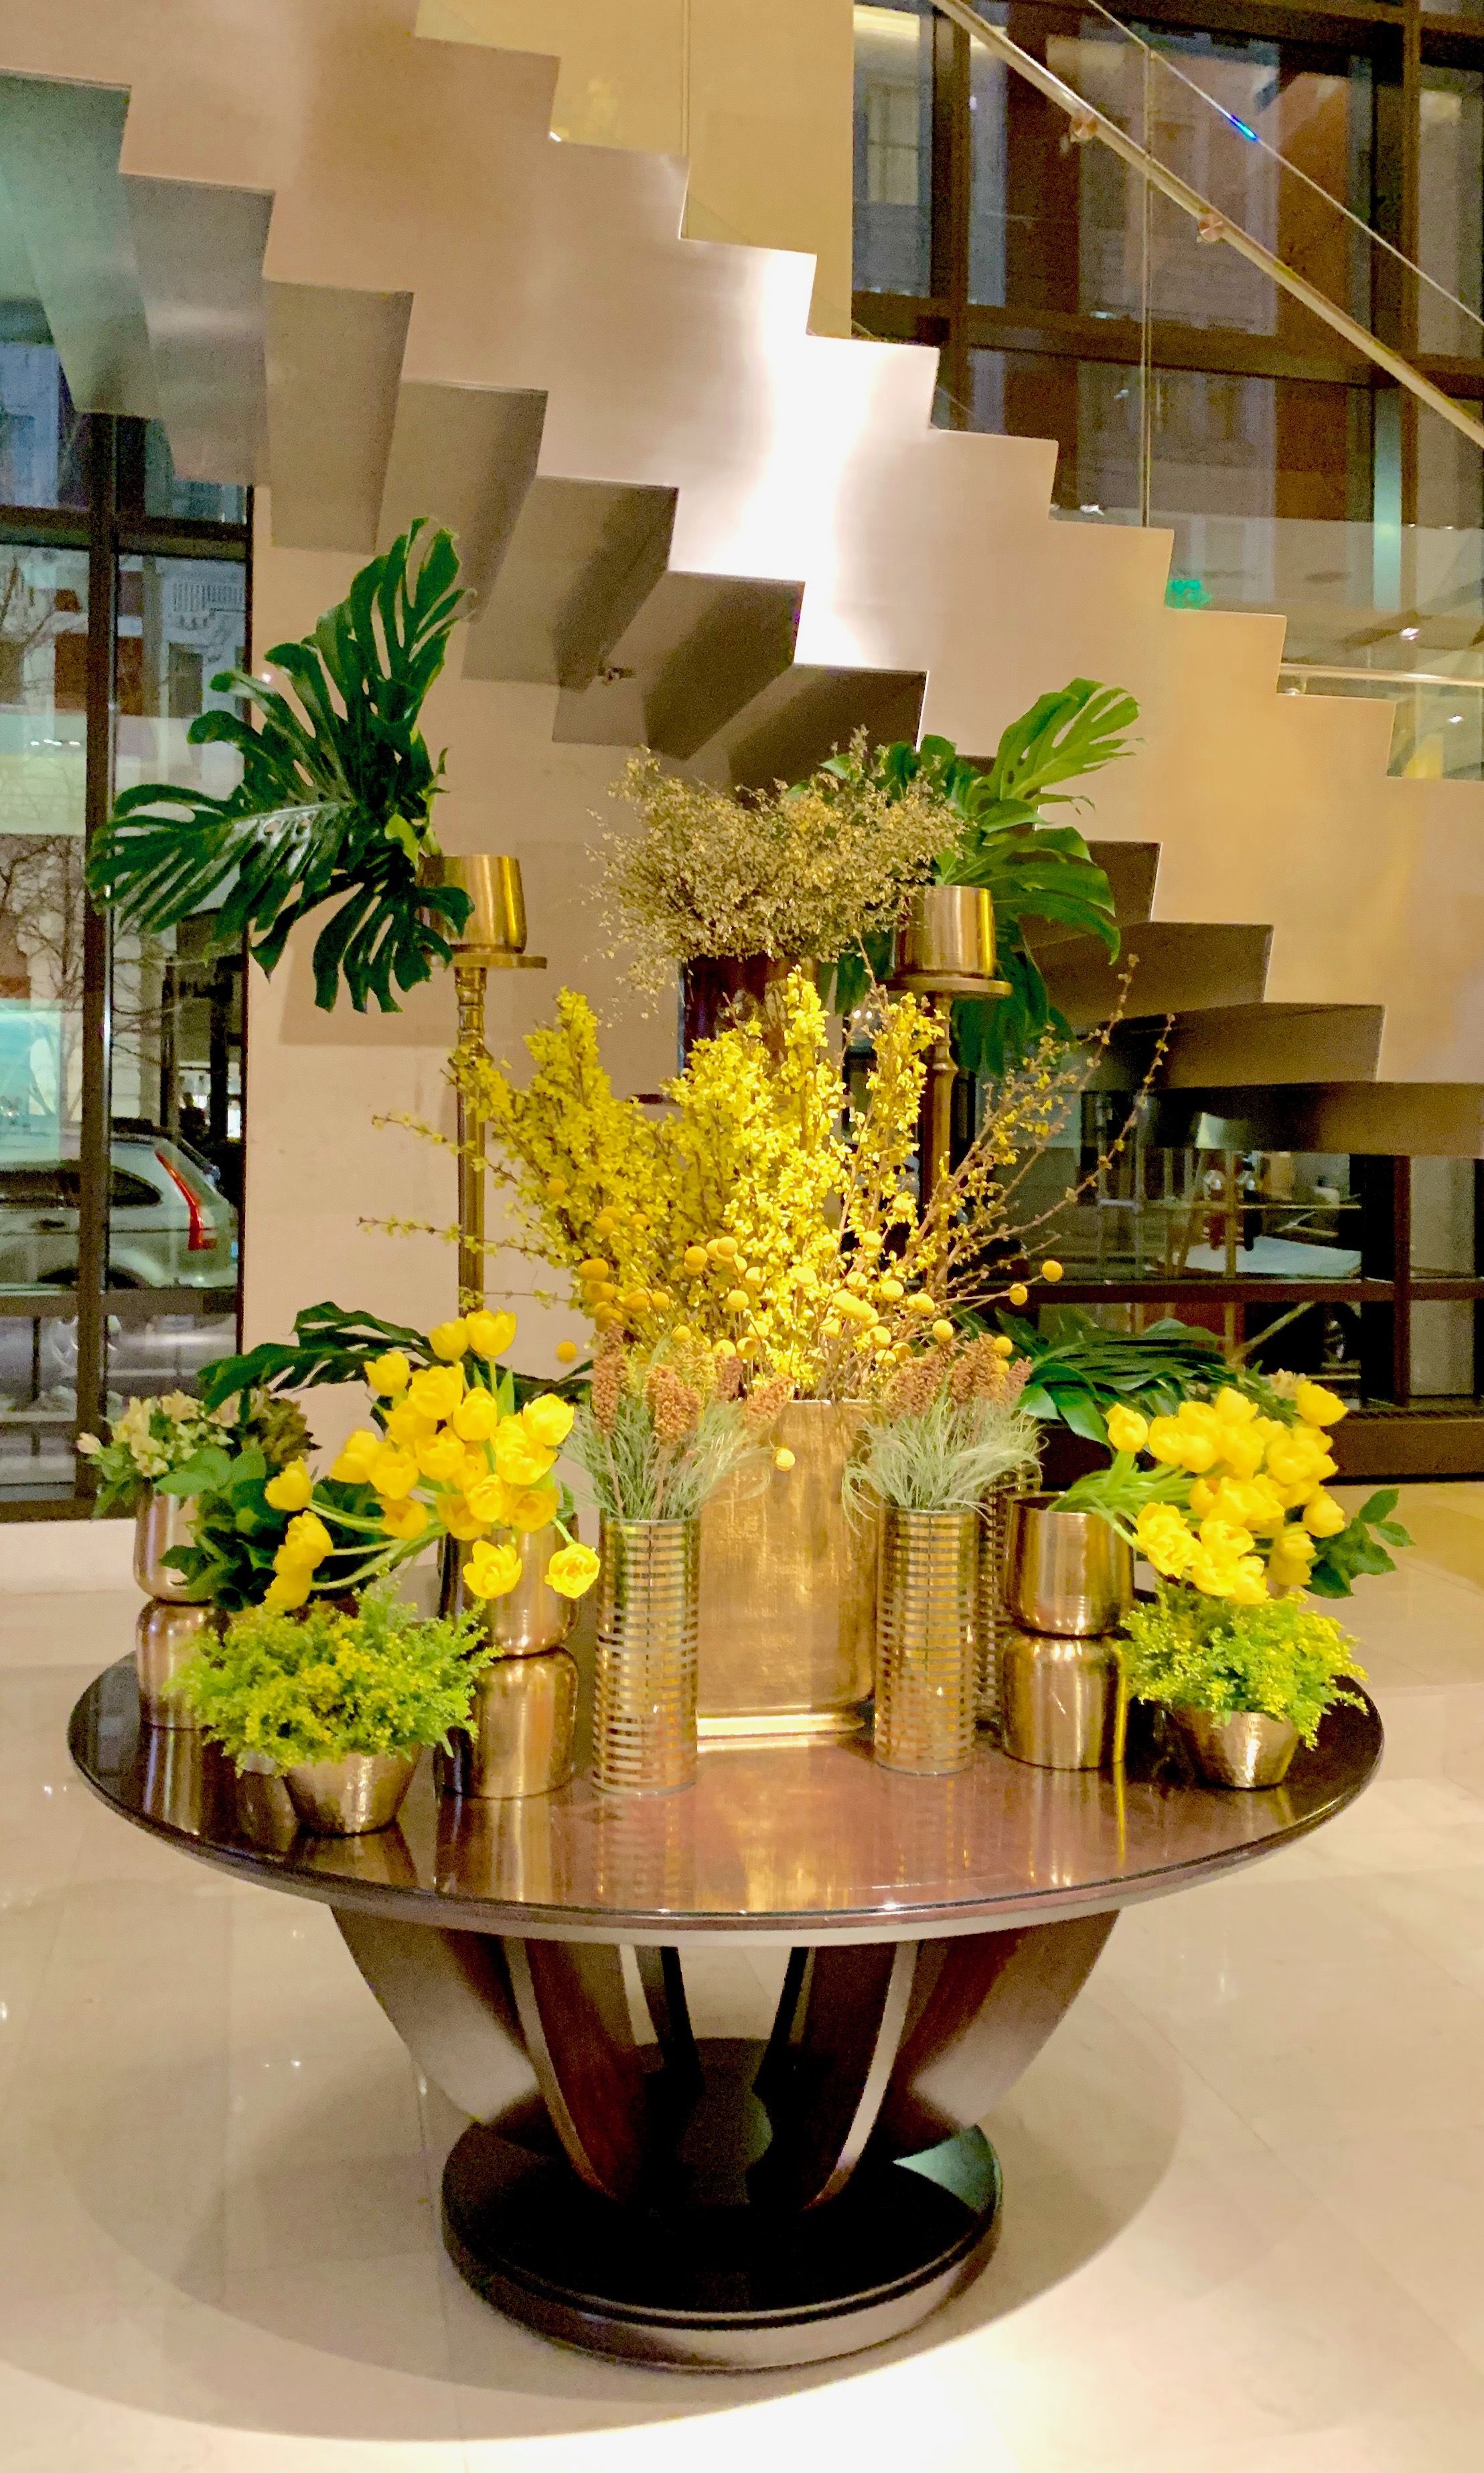 Four Seasons Denver , Arrangement designed by  Tara Worley, Lead Hotel Designer  for  The Perfect Petal